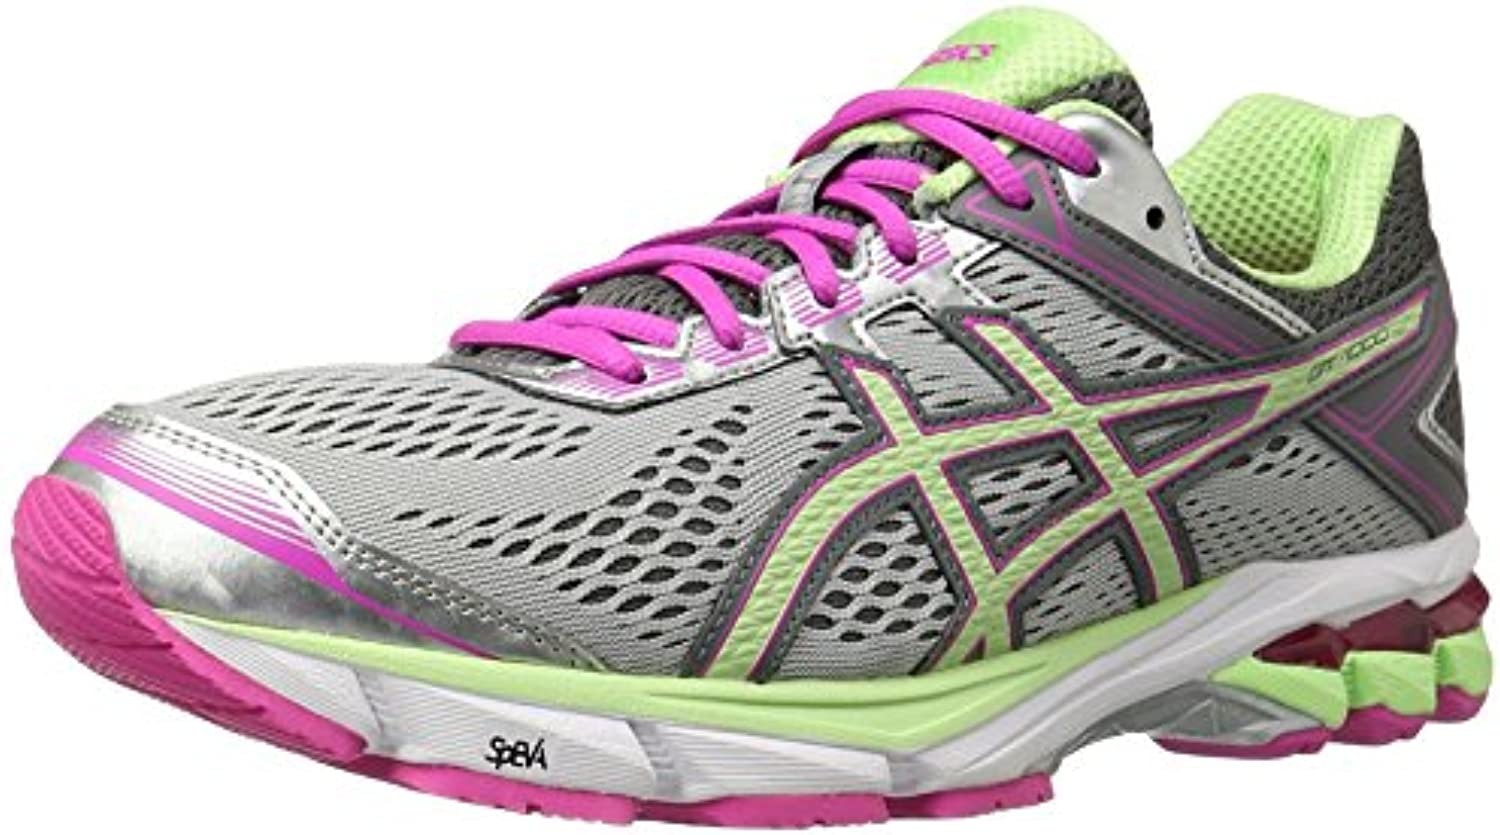 Asics Men's GelKayano 22 Running Shoe